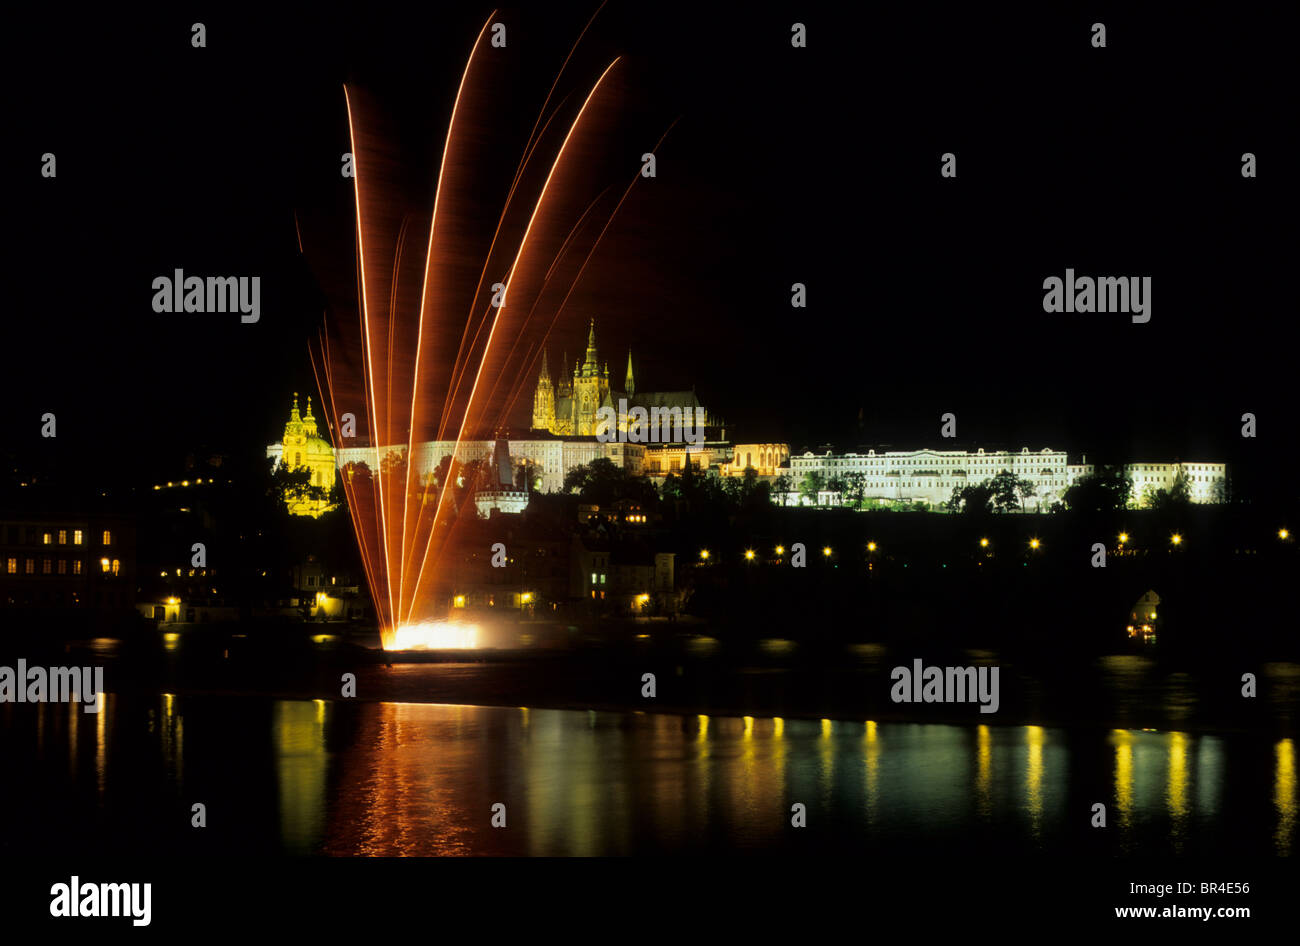 Fireworks at Moldau River in front of Prague Castle with the St. Vitus Cathedral on the Hradčany, Prague, - Stock Image